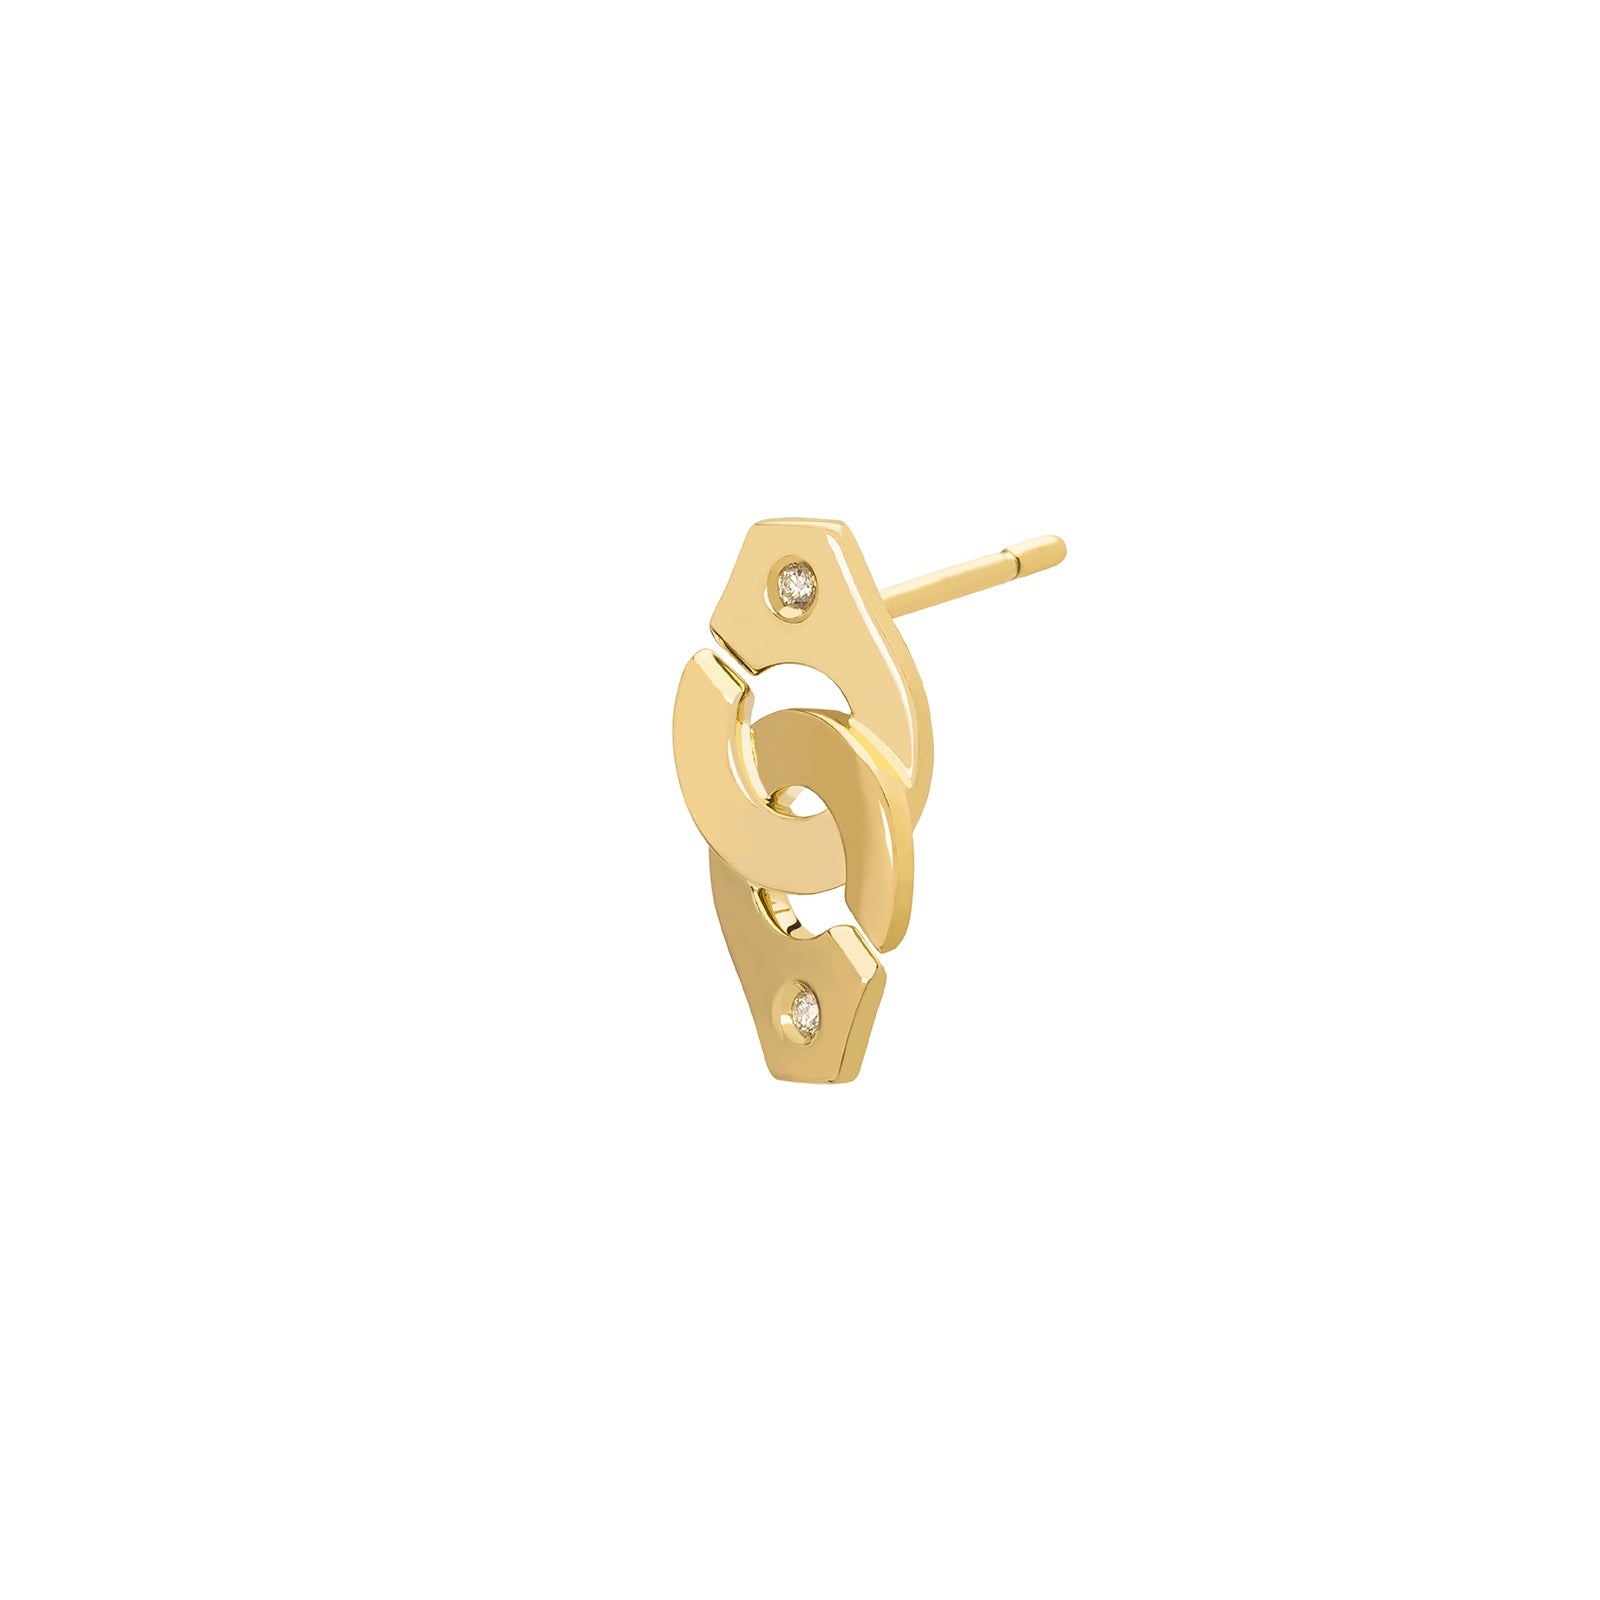 Dinh Van Menottes R8 Earring - Yellow Gold - Earrings - Broken English Jewelry